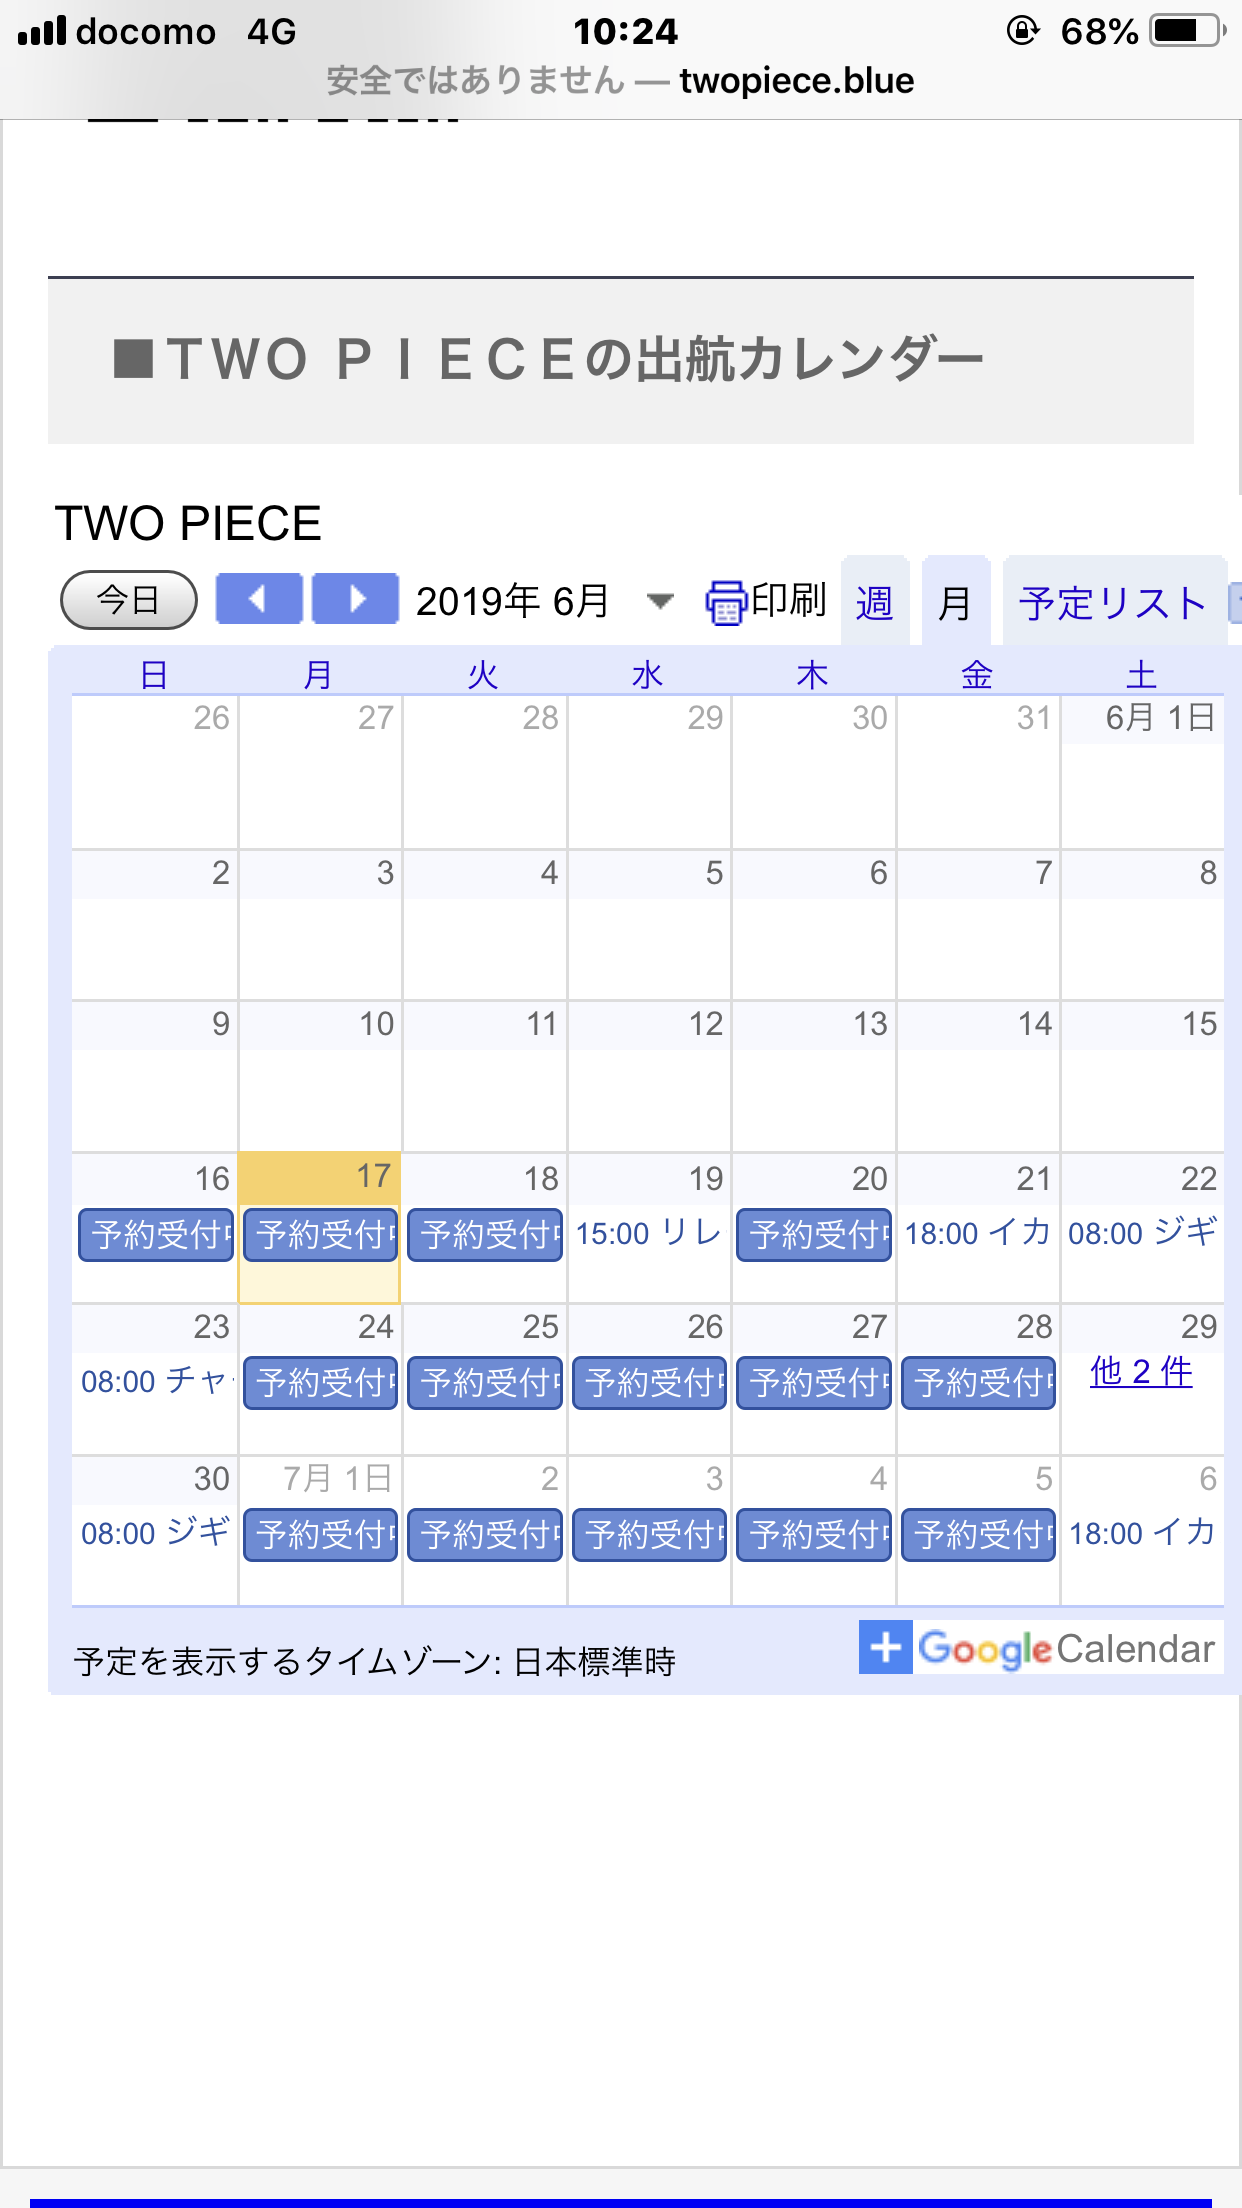 20190617103126786.png